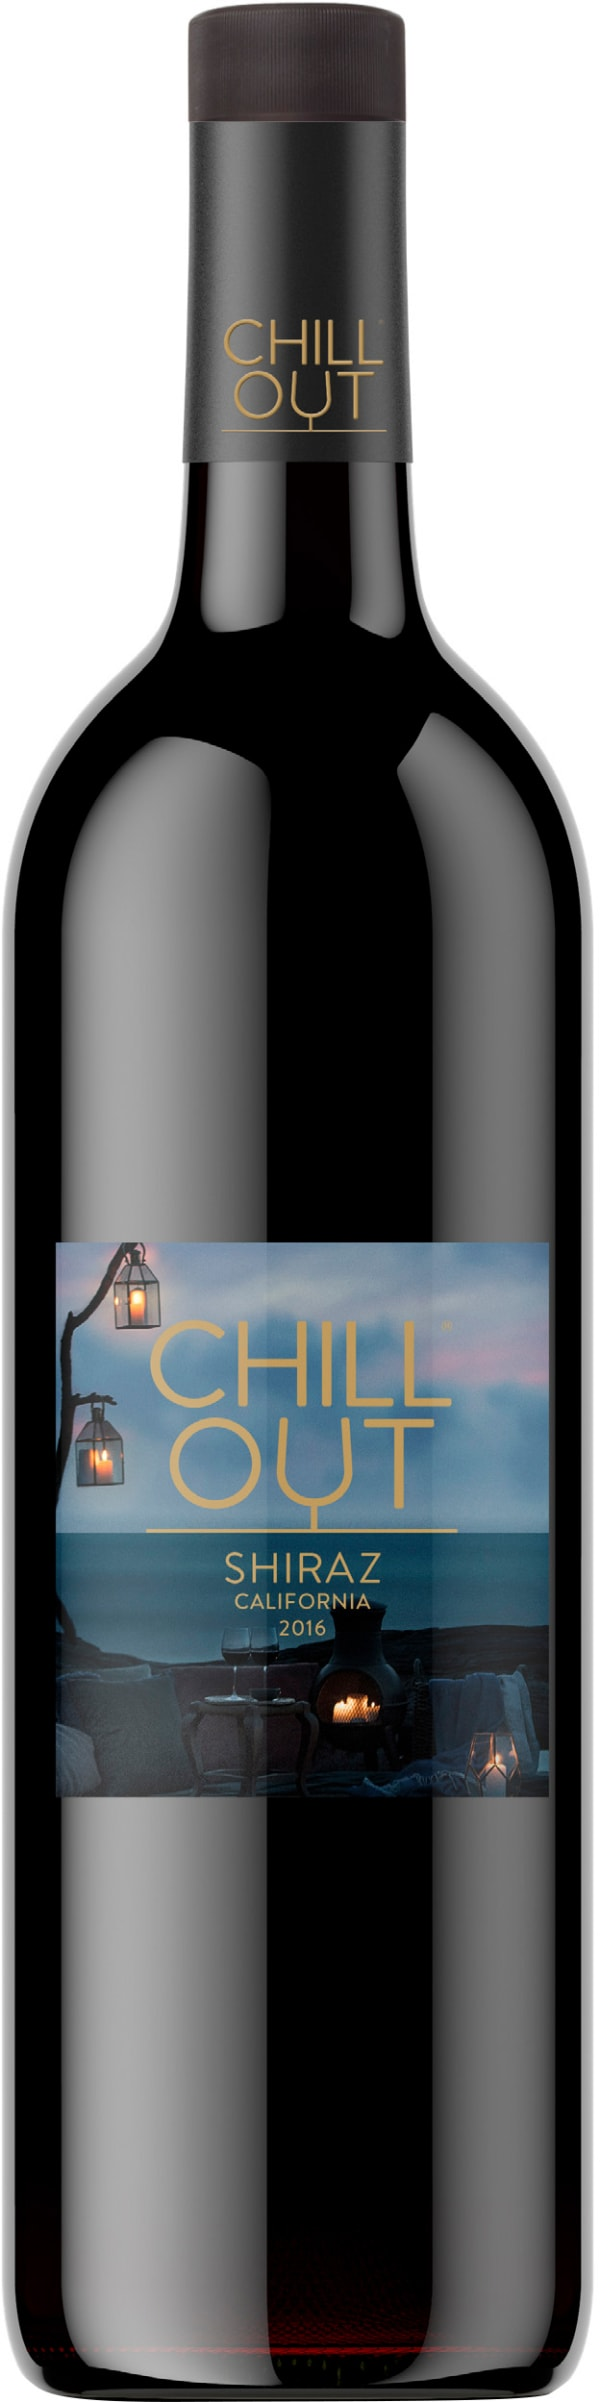 Chill Out Shiraz 2017 plastic bottle